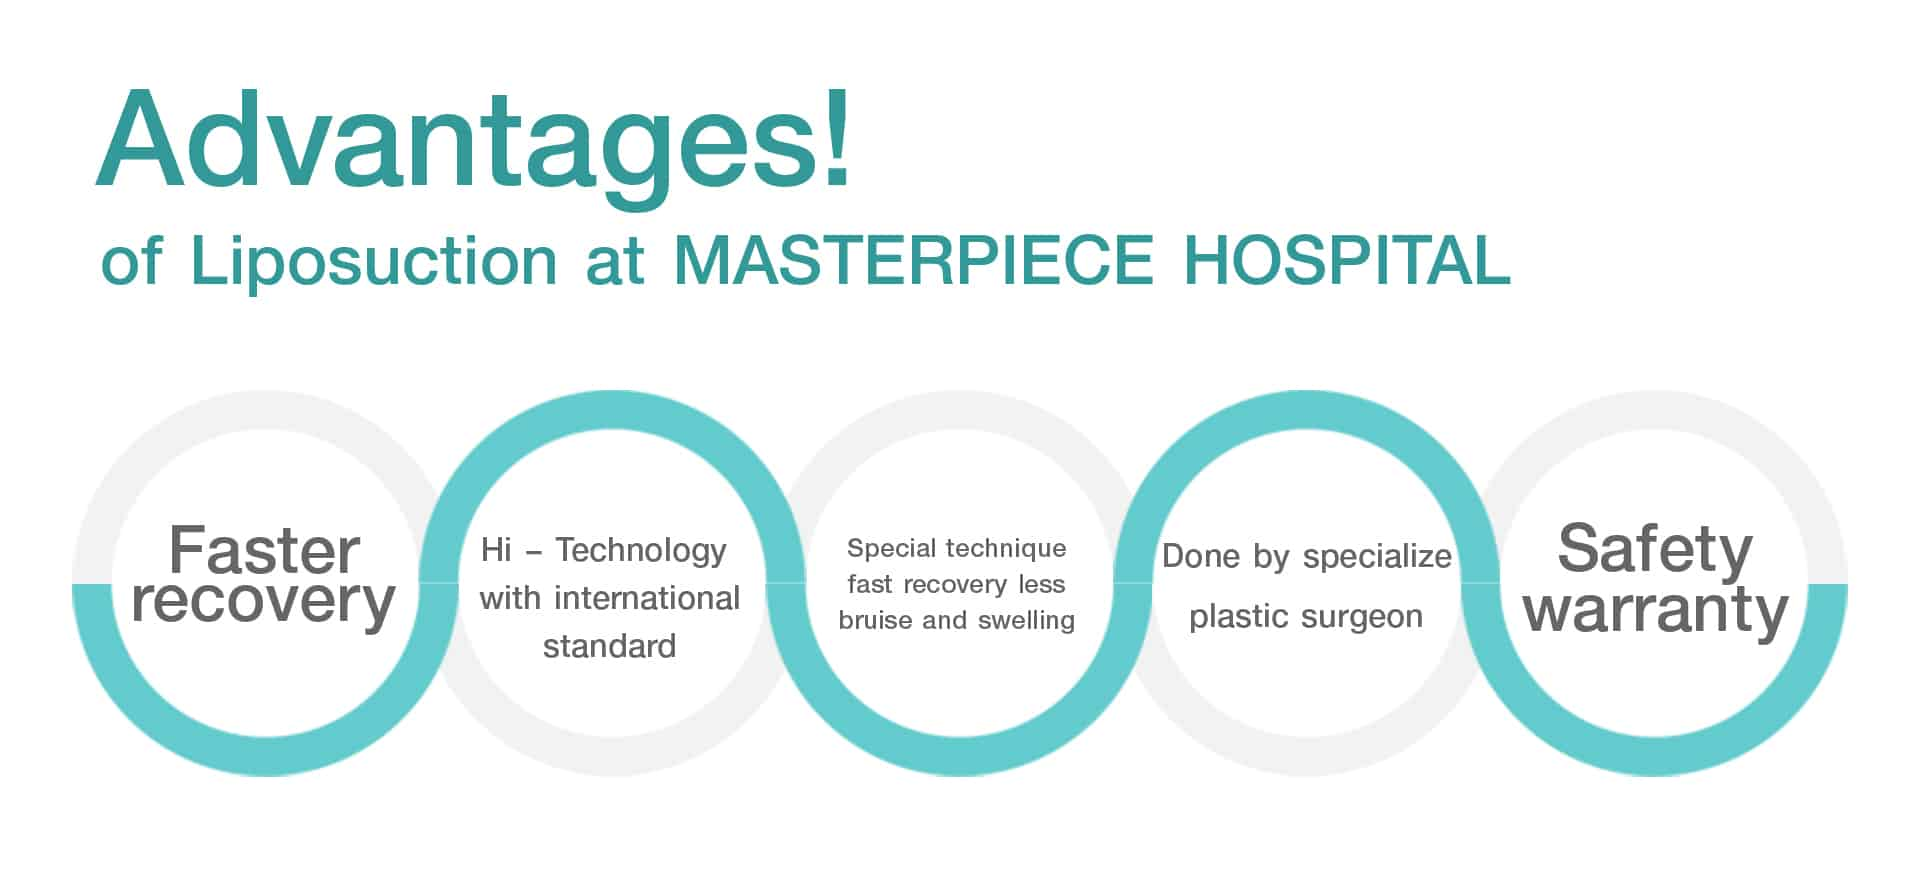 Advantages of Liposuction at Masterpiece Hospital